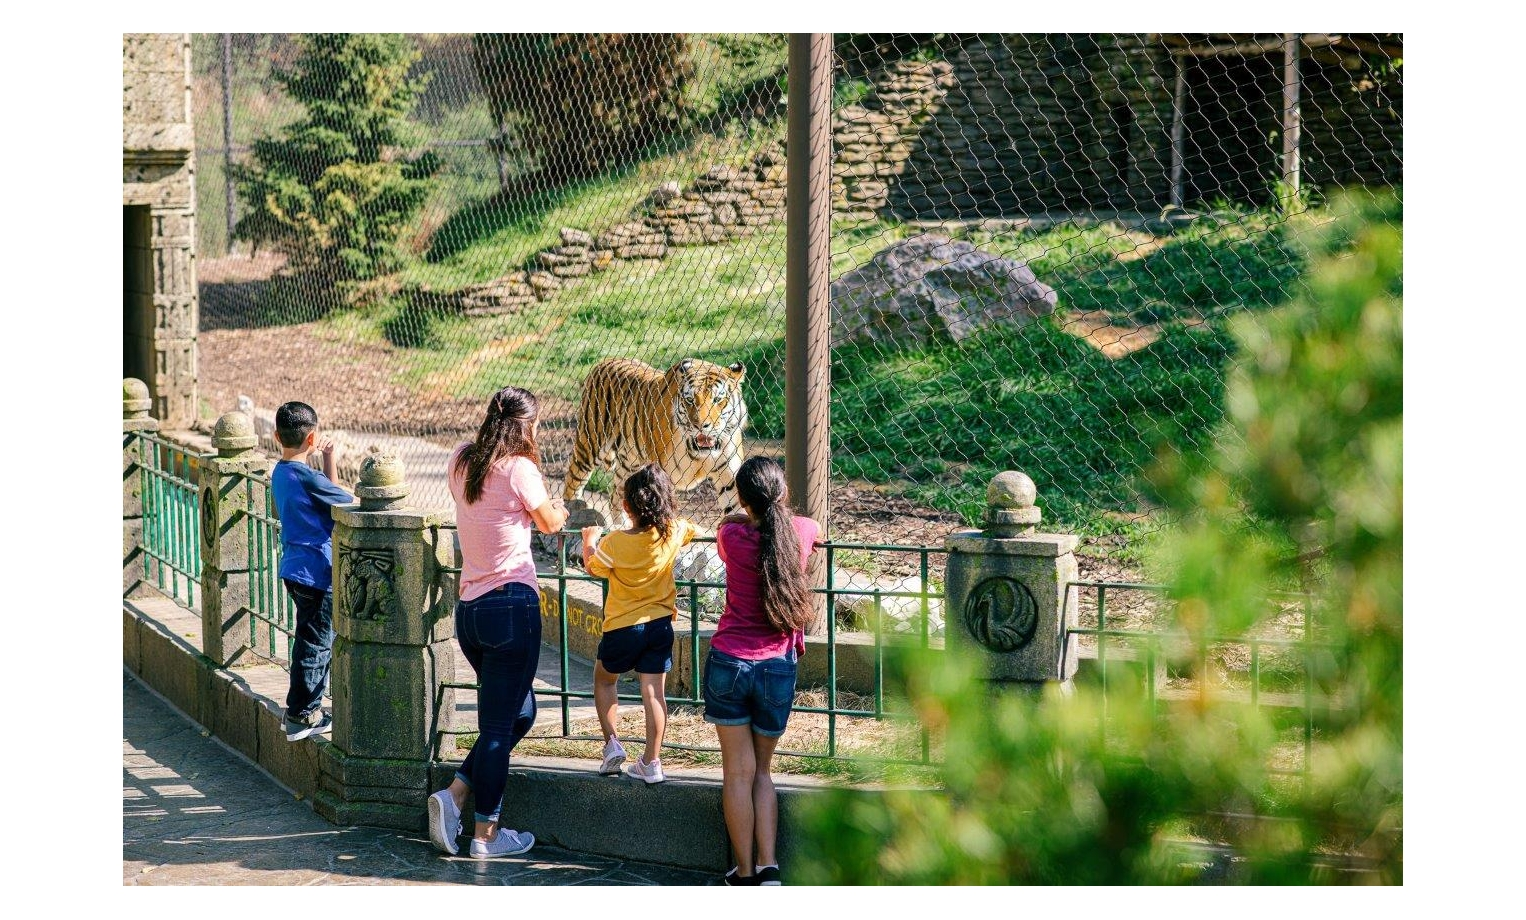 Asian Highlands at Omaha's Henry Doorly Zoo and Aquarium and the Wildlife Safari Park Both Take First Place Spots in 2021 USA TODAY 10Best Readers' Choice Awards